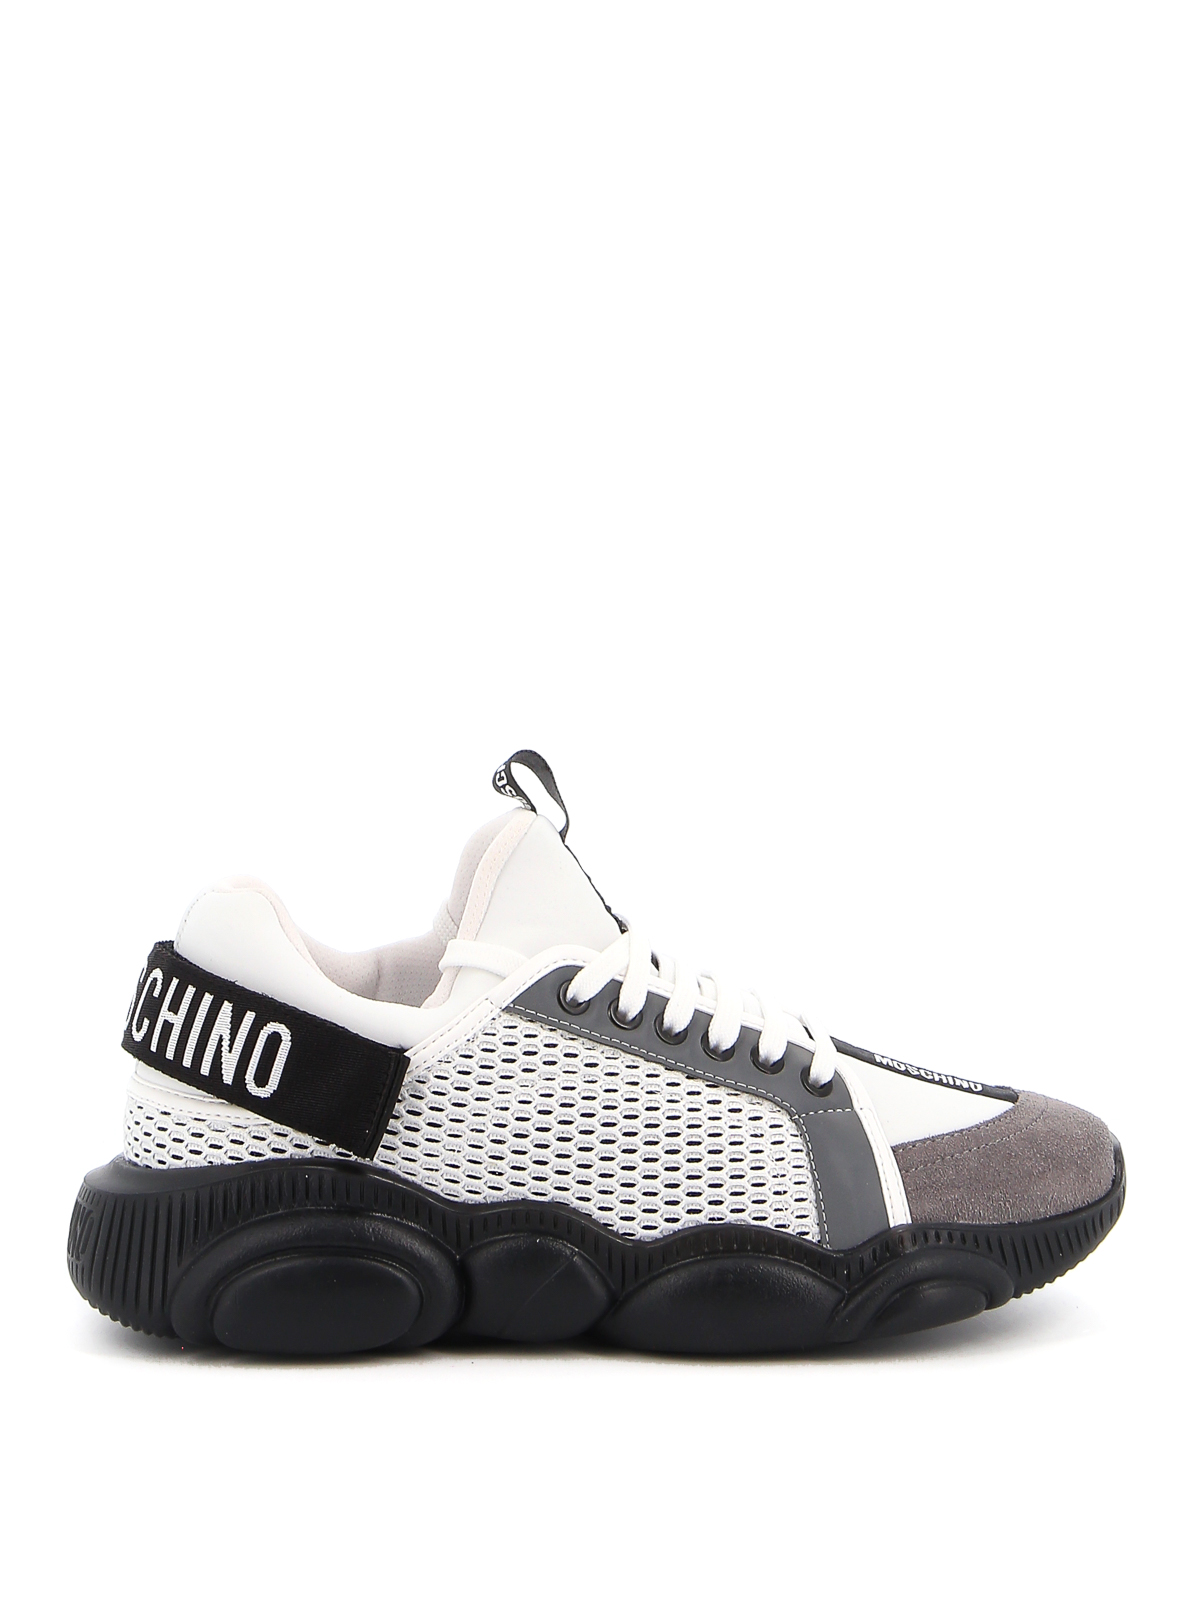 Moschino TEDDY MESH AND LAMINATED DETAIL SNEAKERS